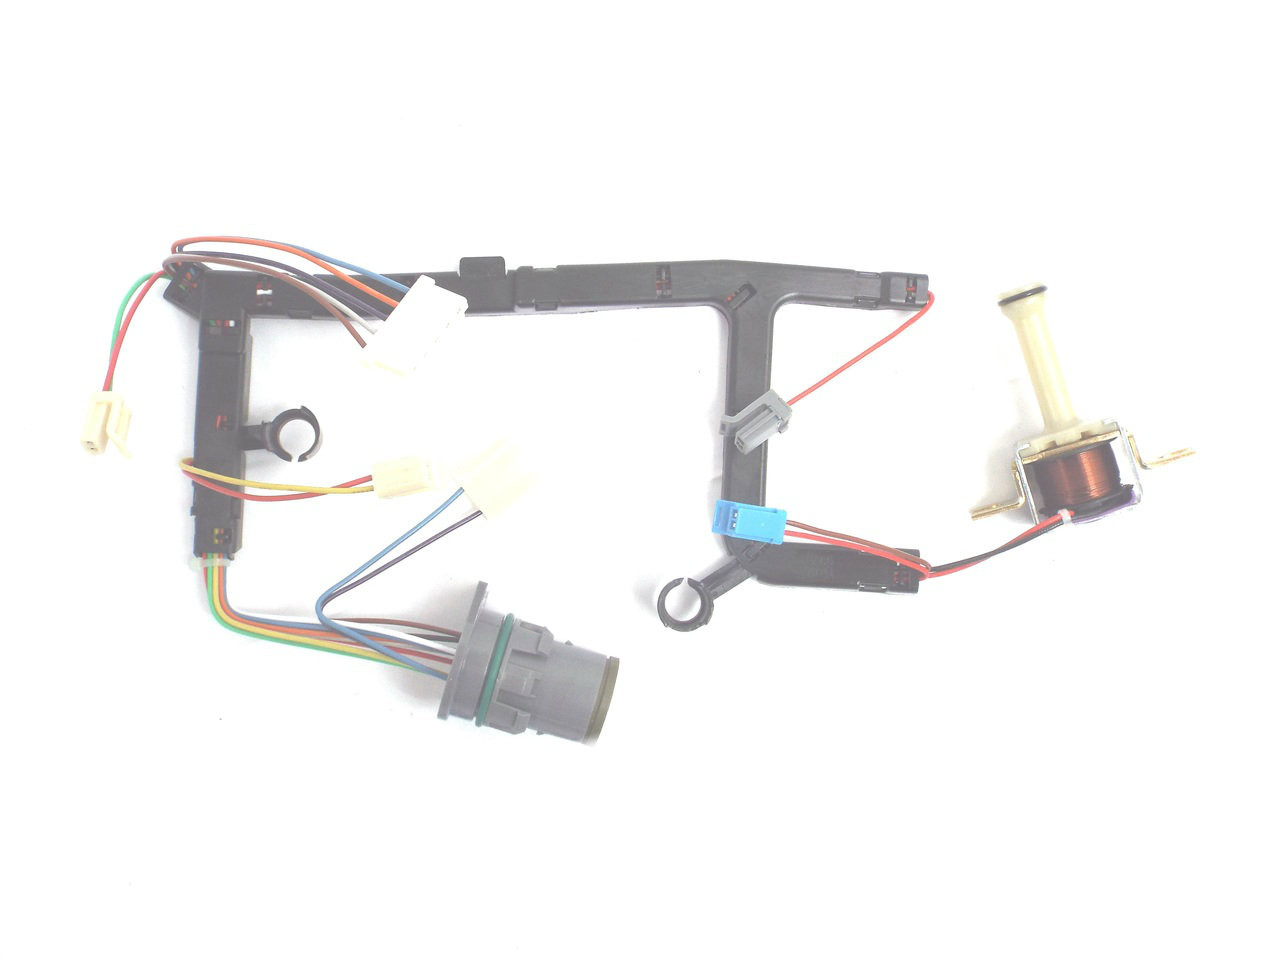 small resolution of gm 4l60e transmission wiring harness from global transmission parts 1997 2003